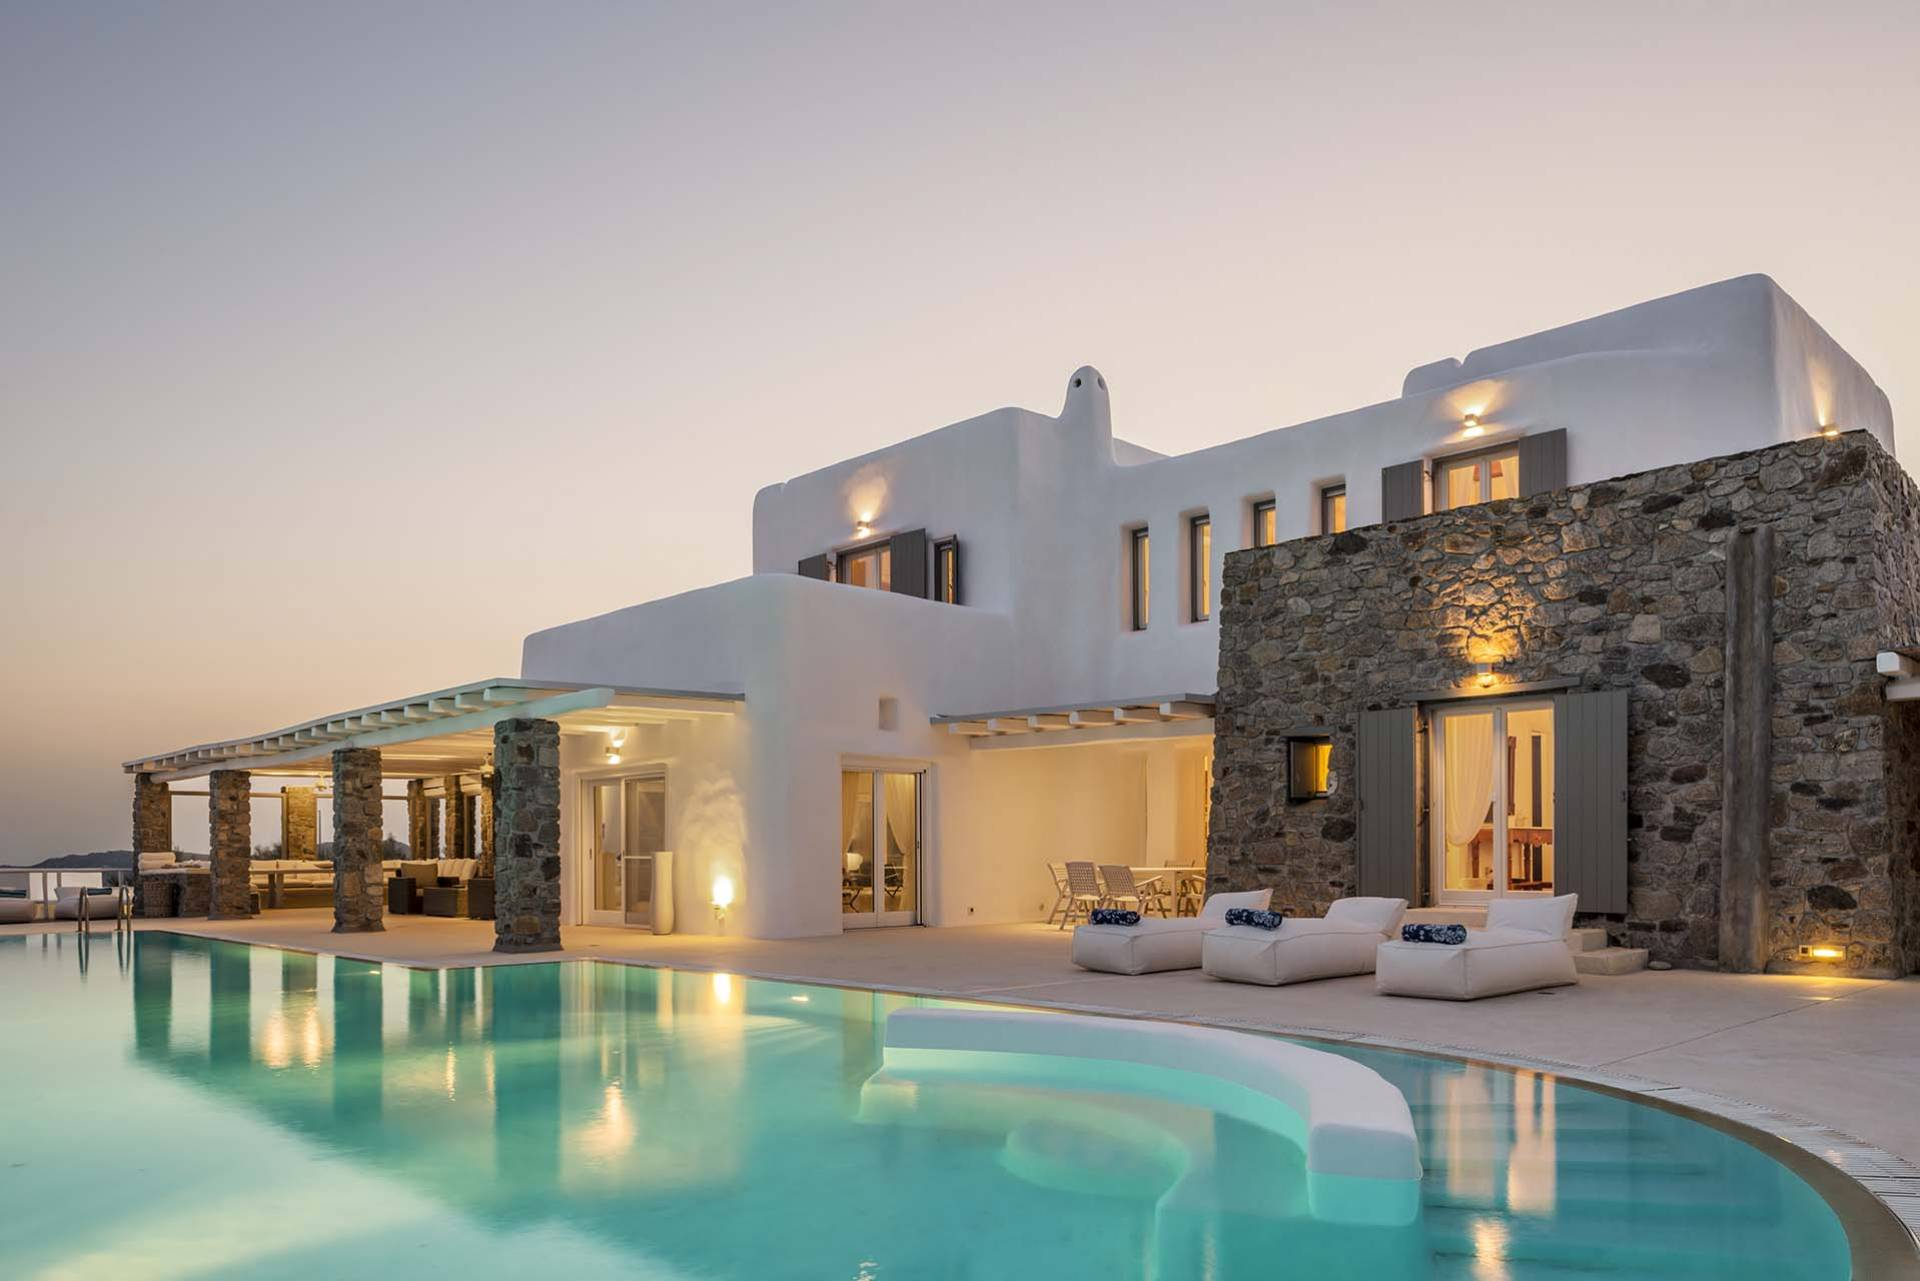 Mykonos luxury villa Dreamcatcher in Aleomandra